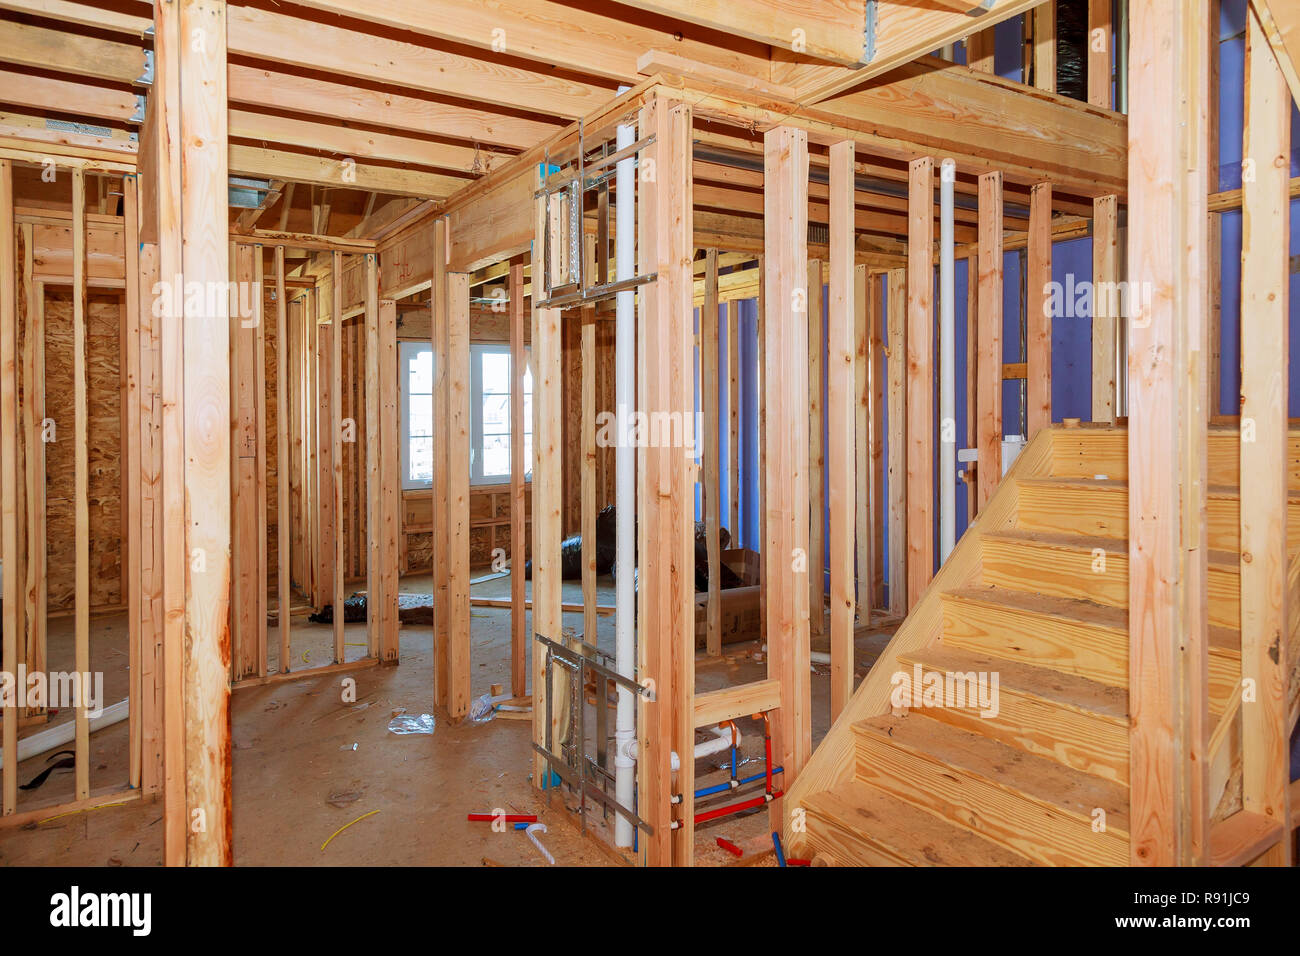 Wood Framing Work In Progress With Wood Framing Walls And Ceiling Or